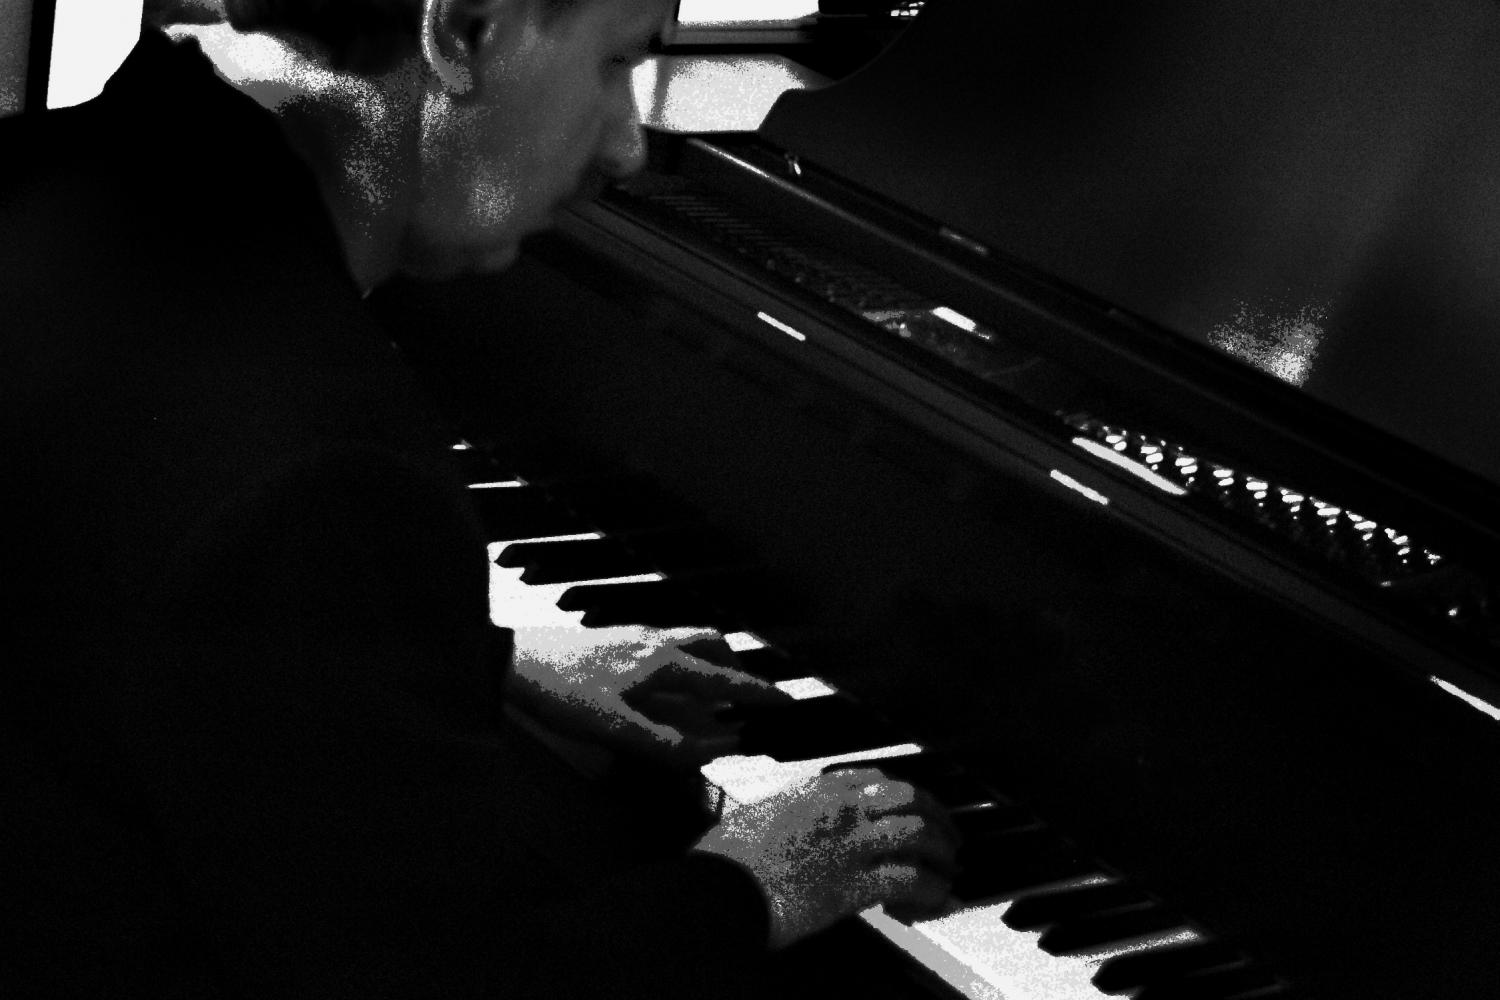 Jazz Dude at piano - photo by David Bravo